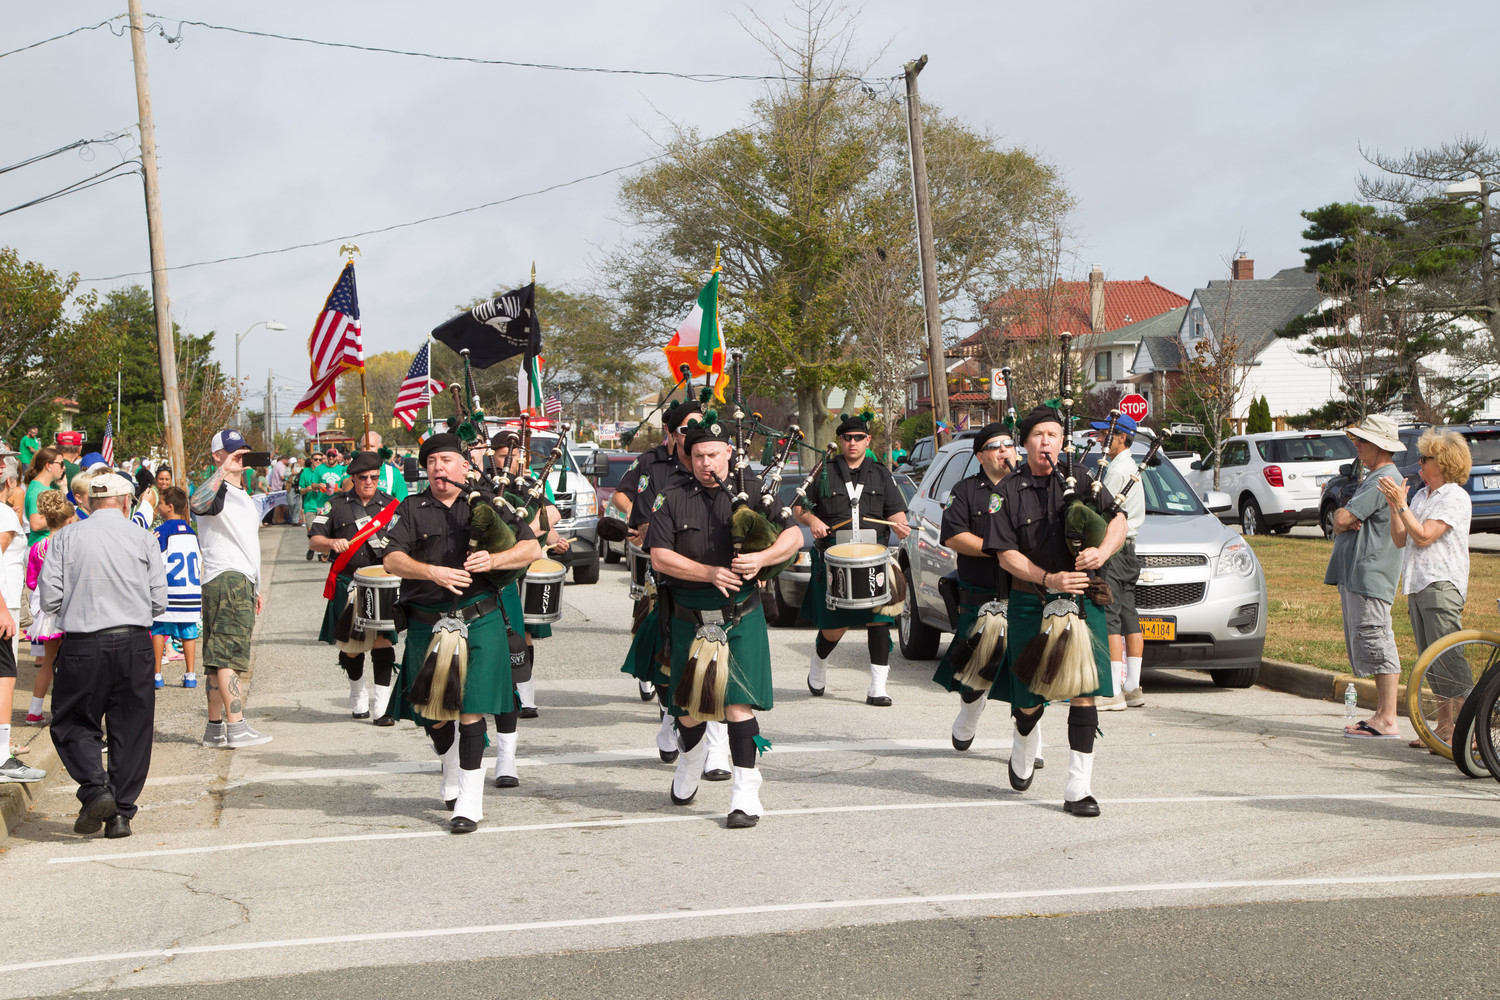 The New York City Department of Sanitation Emerald Society Pipes and Drums played the bagpipes in the parade on Saturday morning.